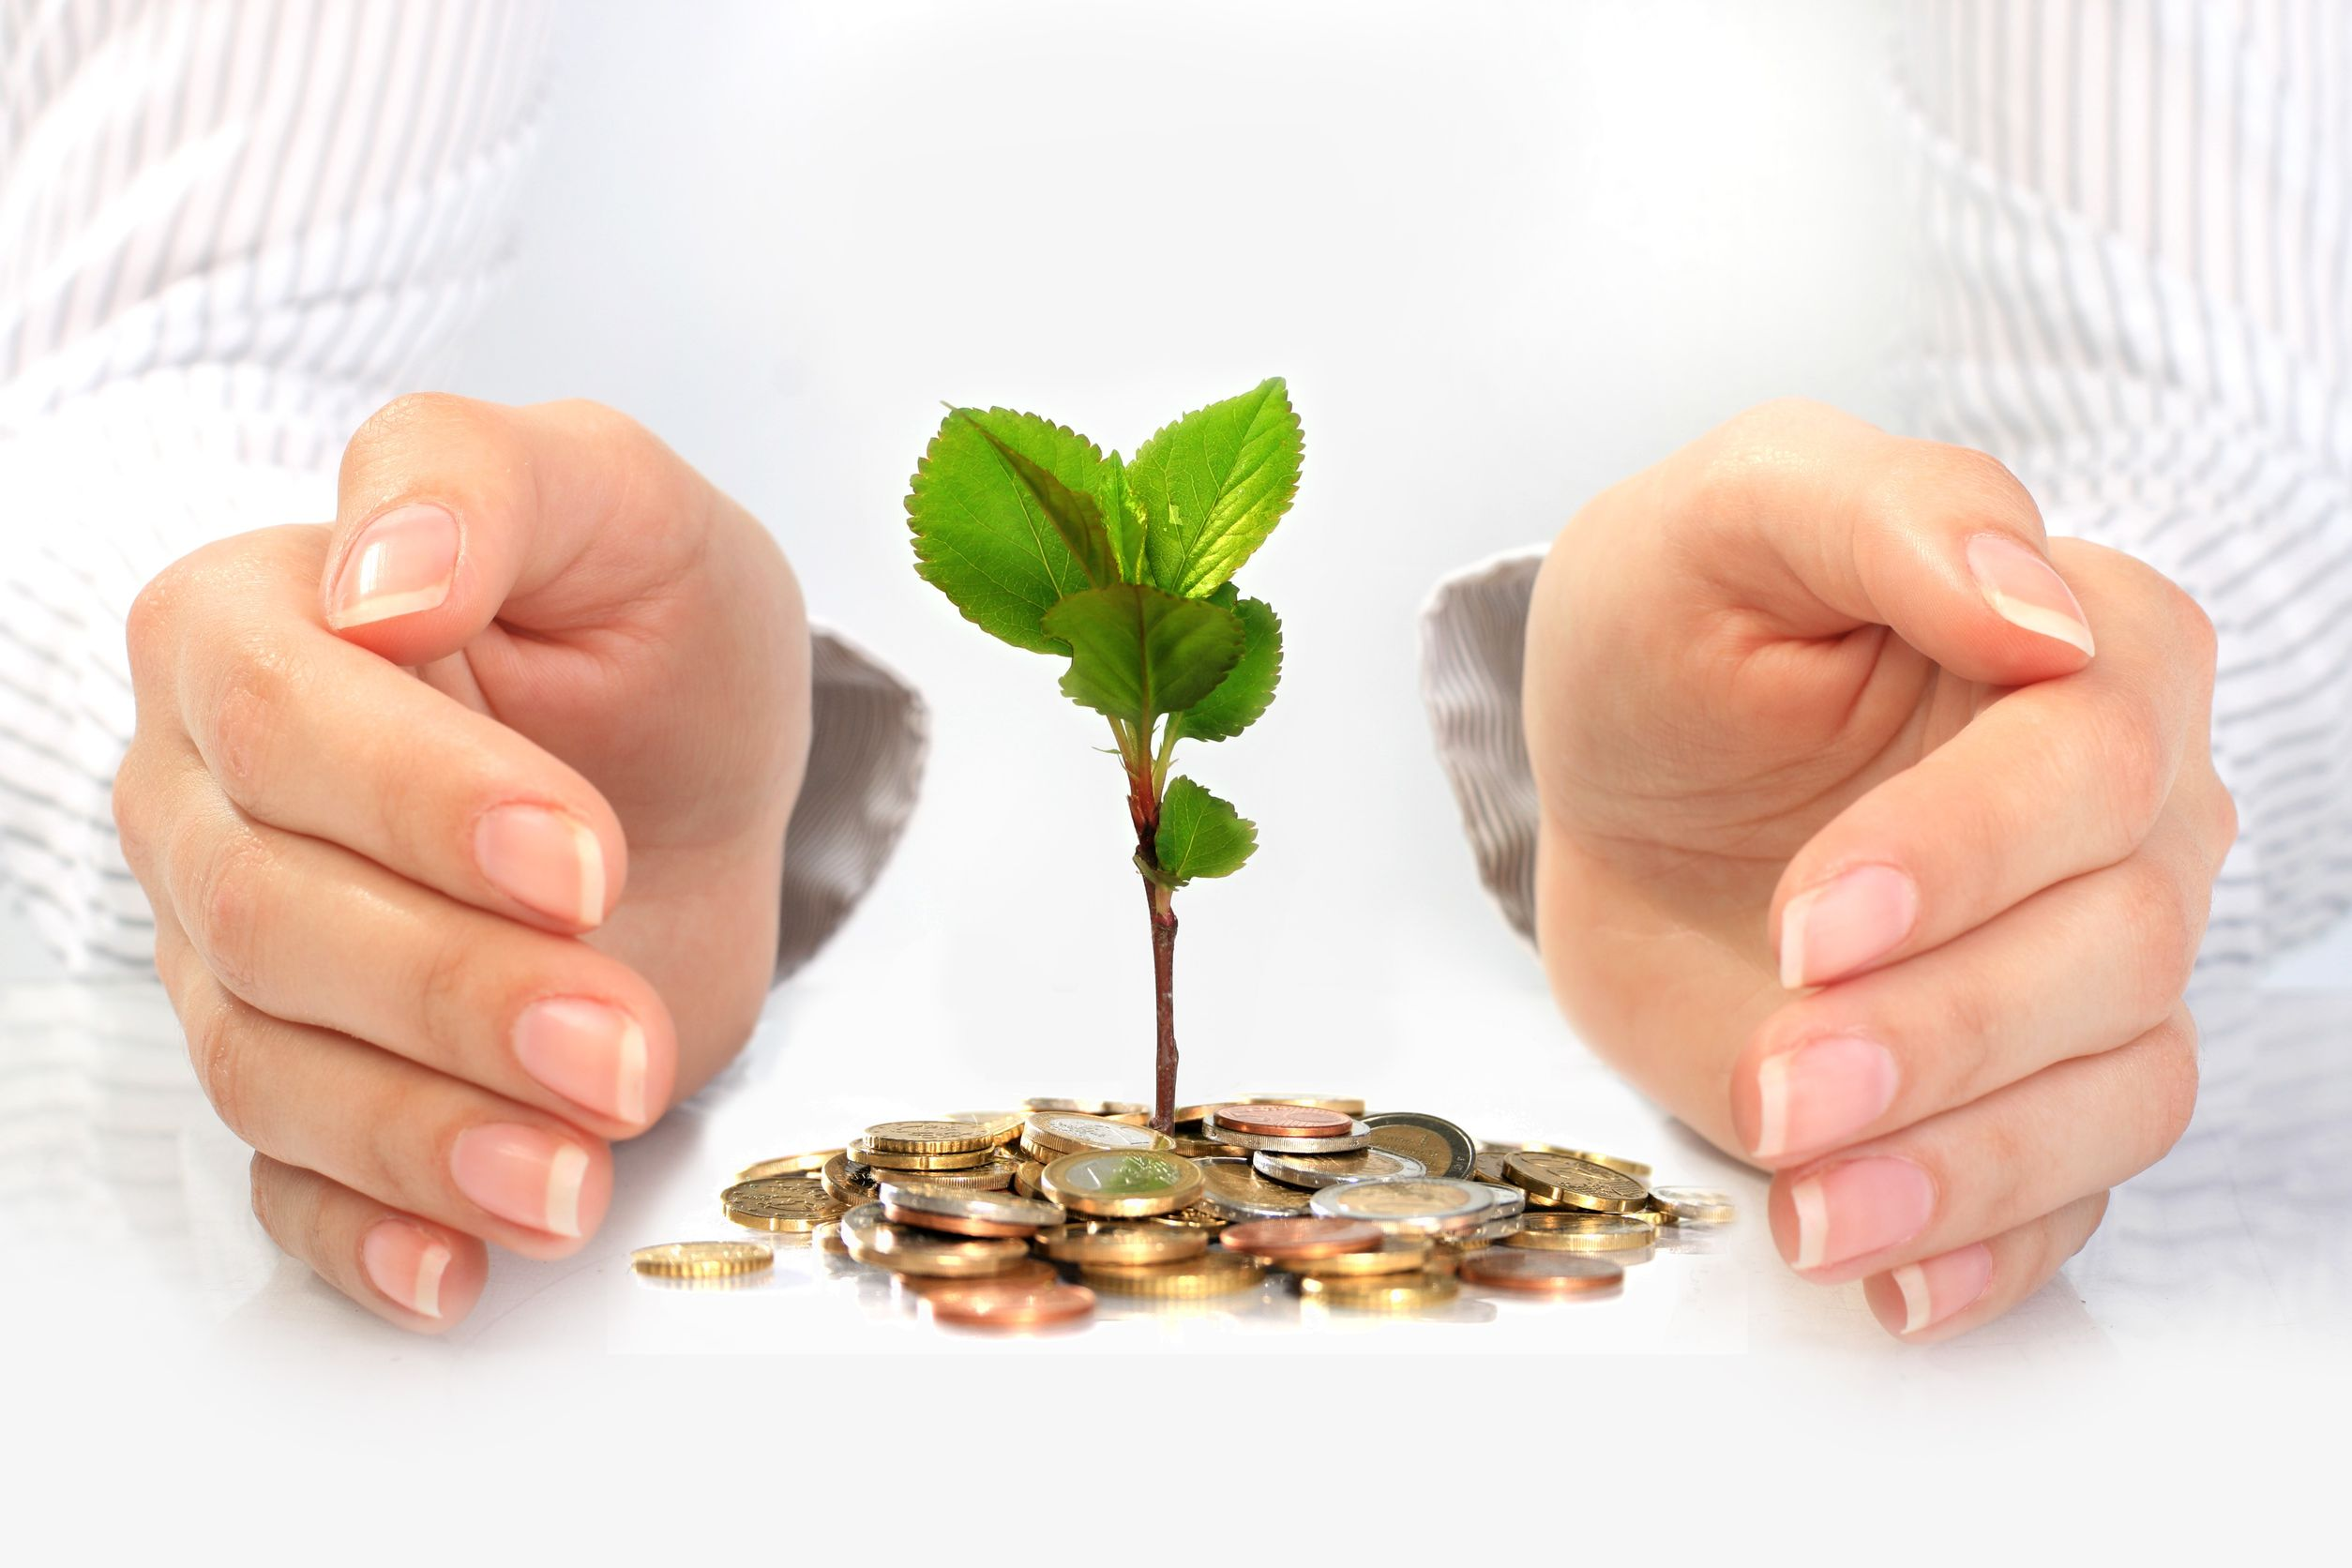 Making Your Investments Smart